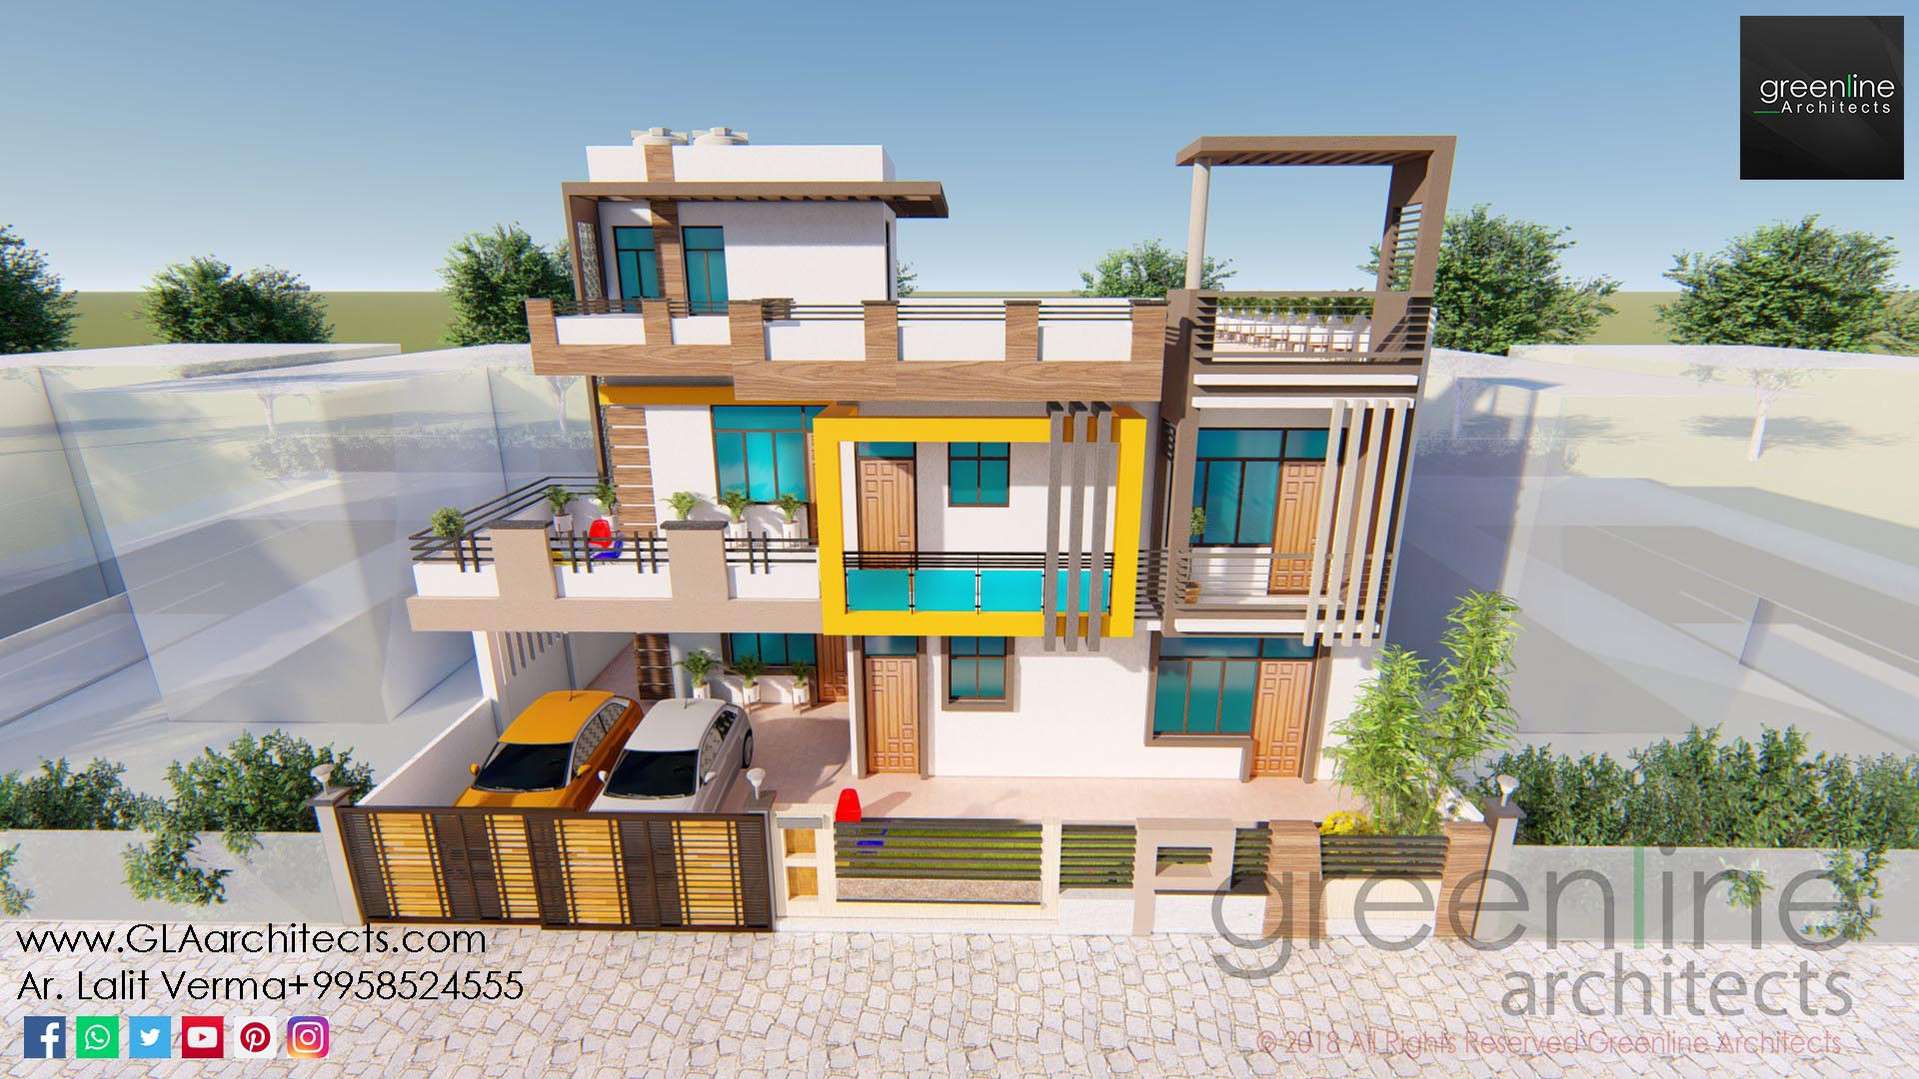 45 X 65 feet House Design by greenline architects lucknow